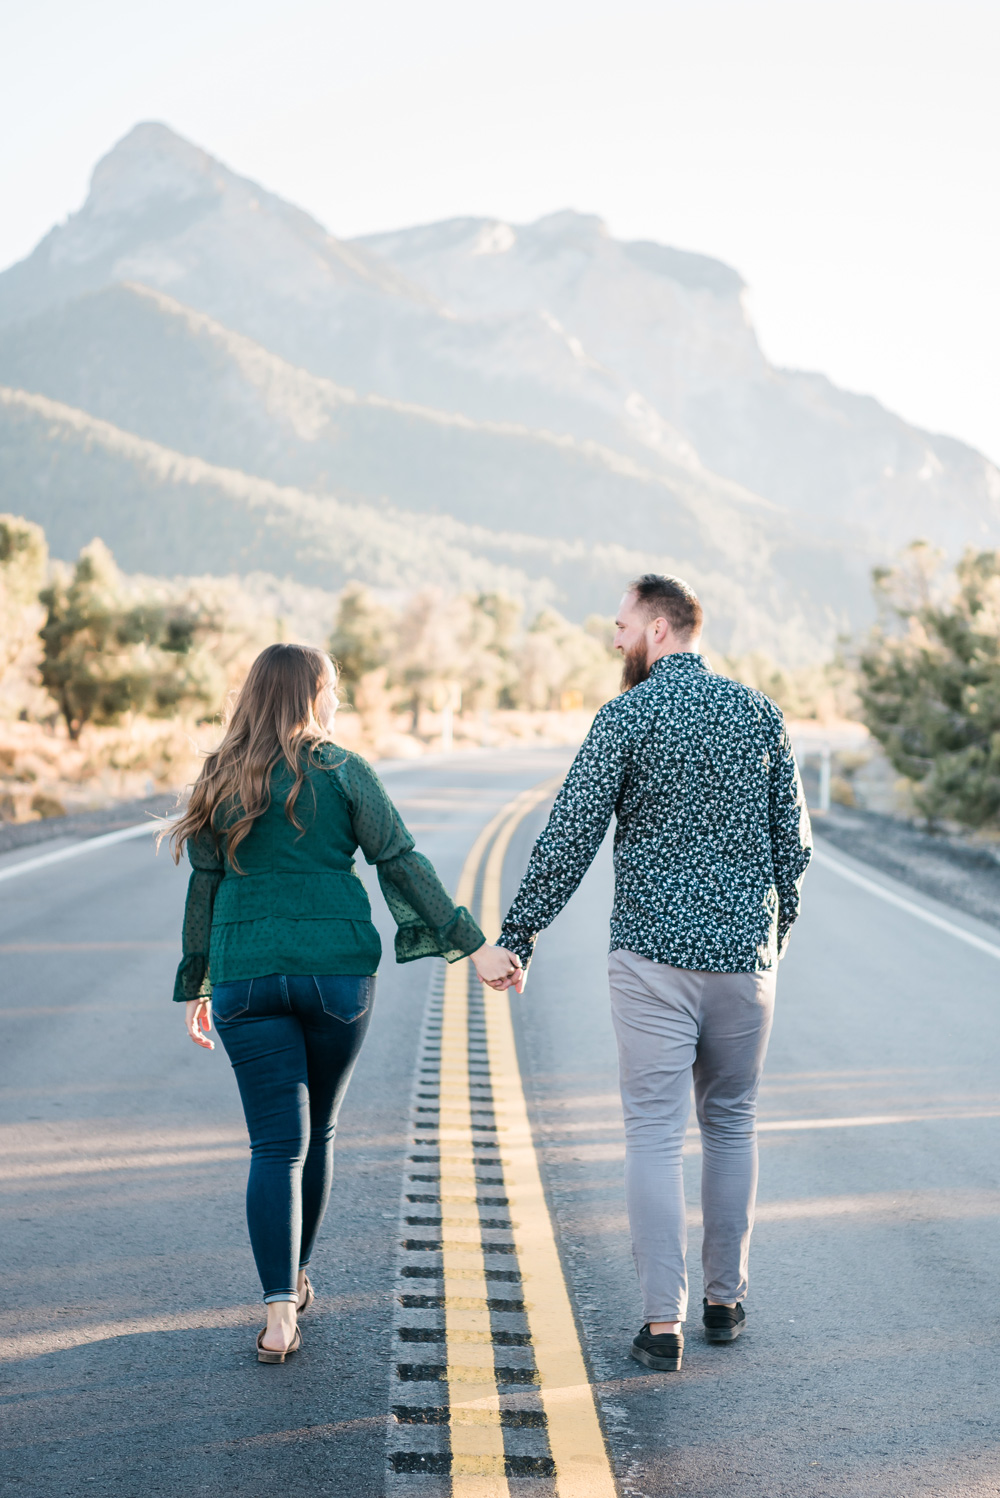 Mount Charleston Engagement Session | Kristen Marie Weddings + Portraits | Las Vegas Wedding Photographer